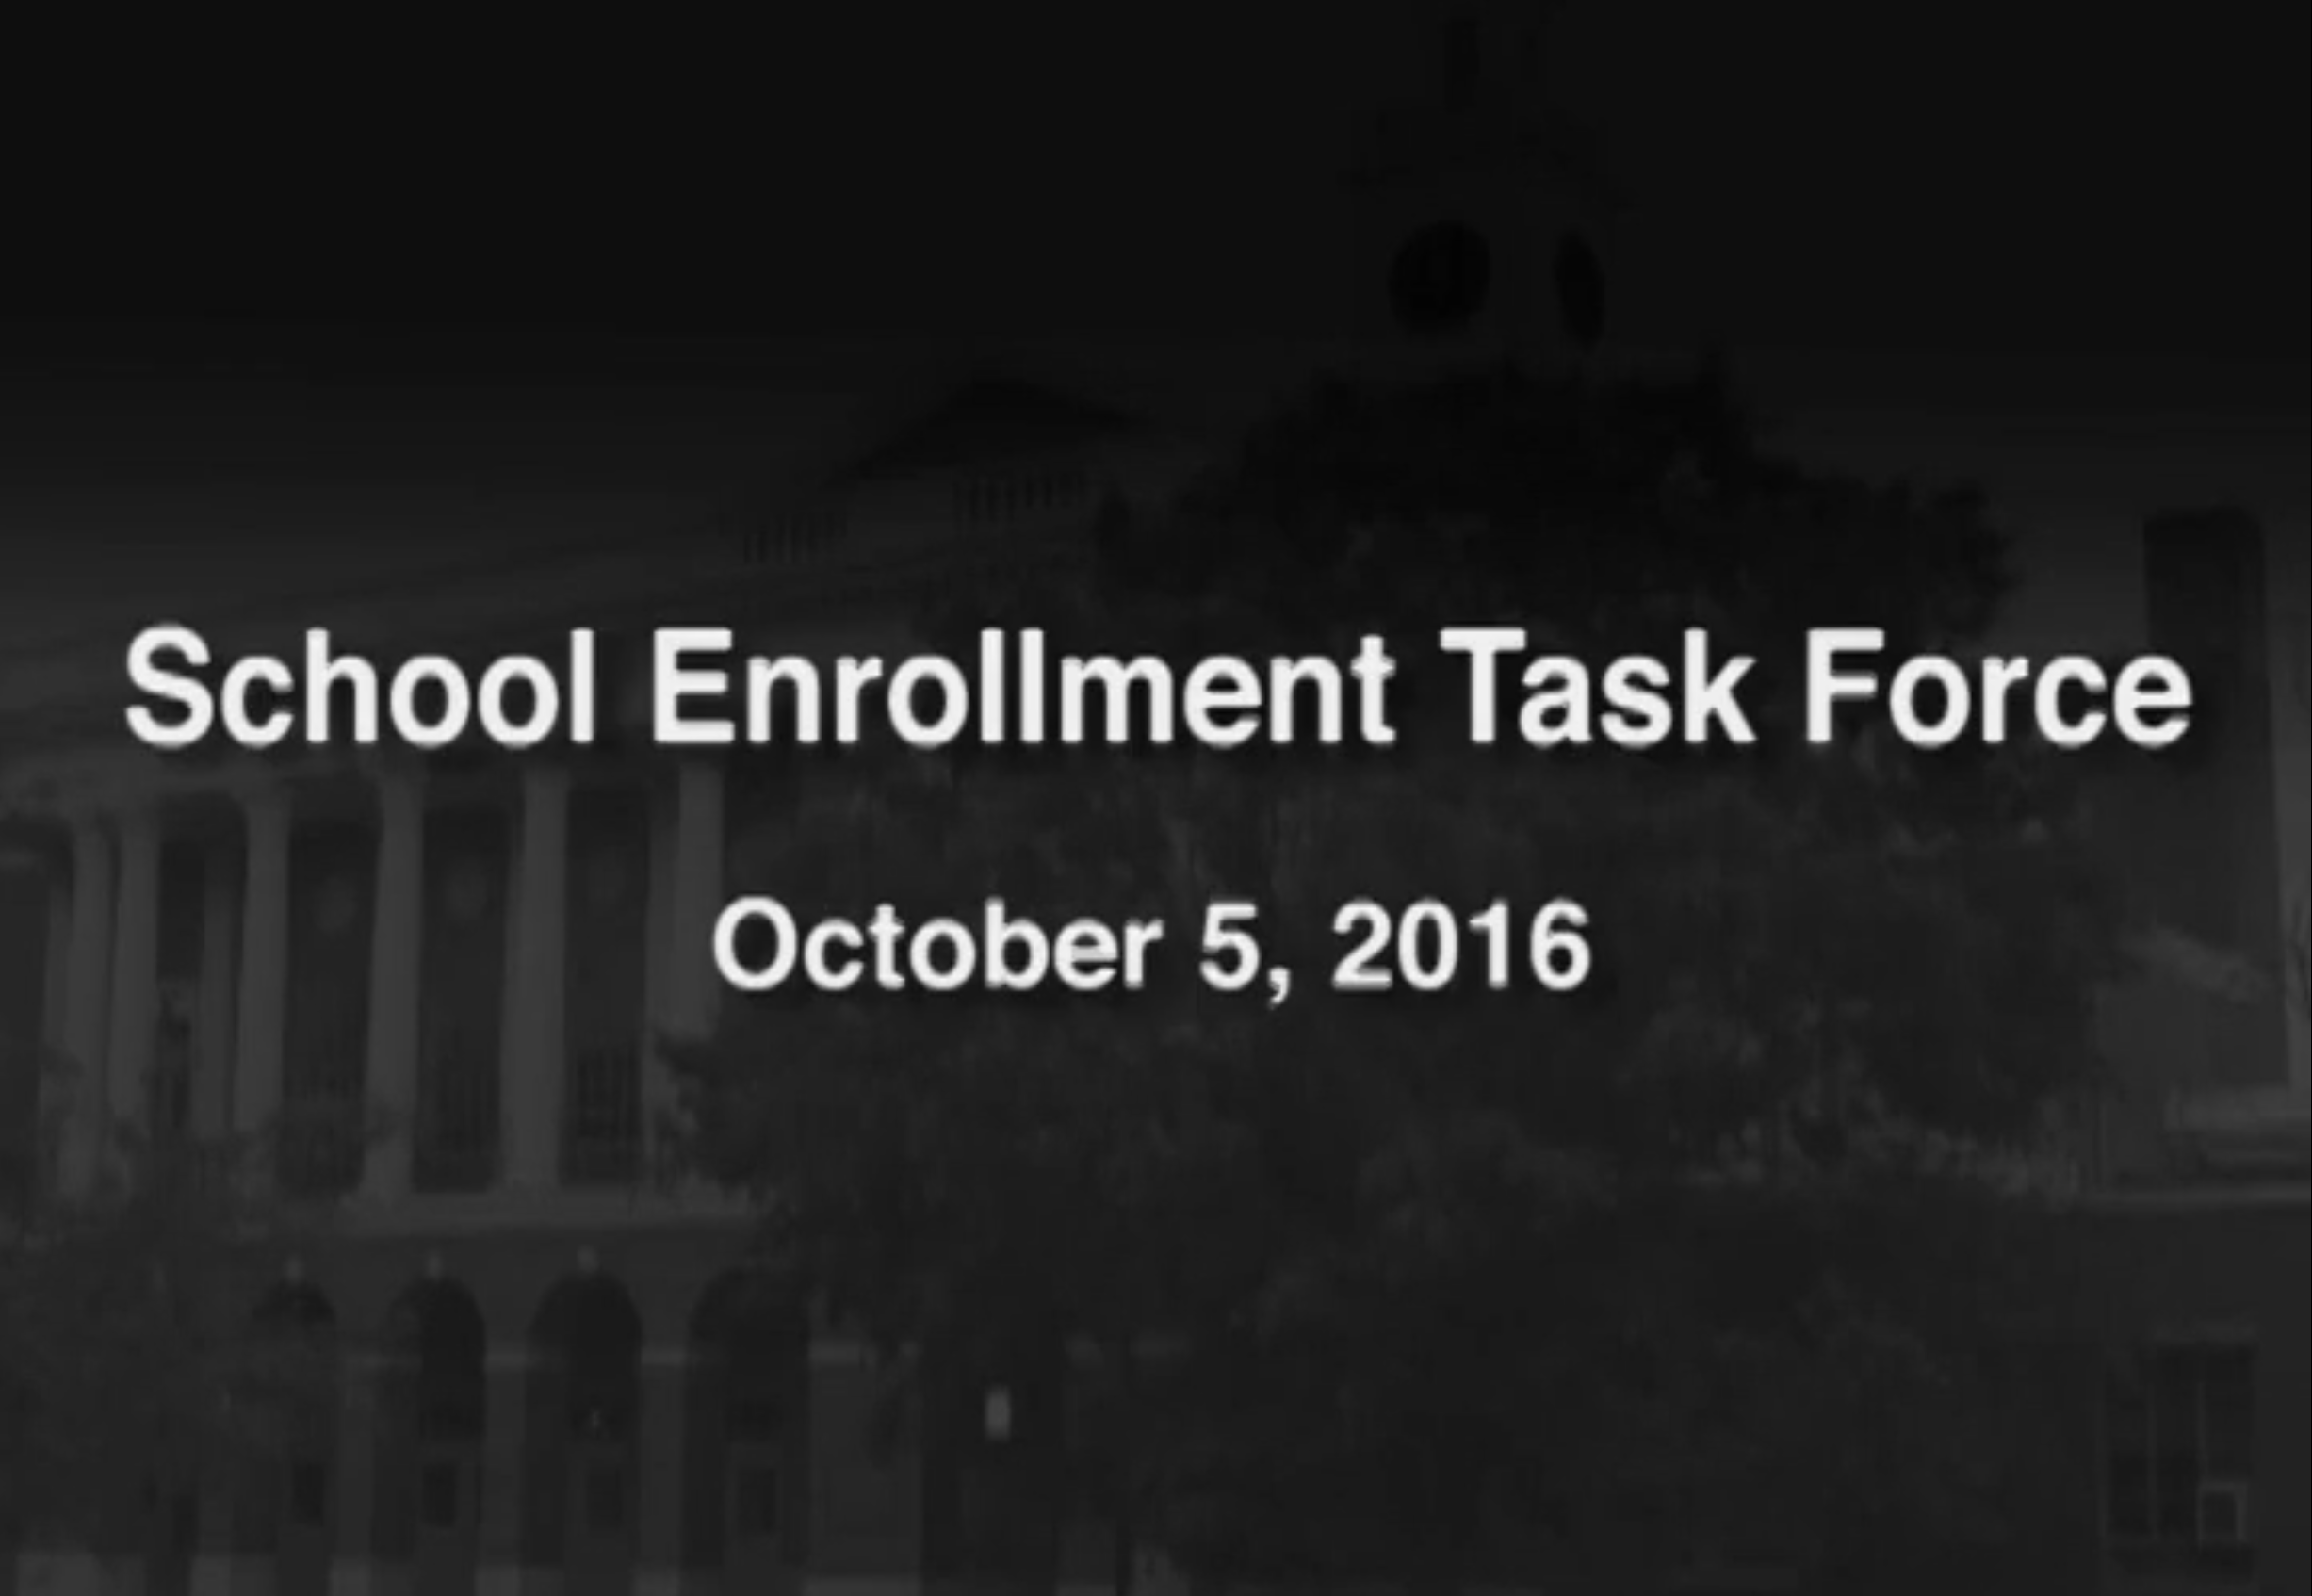 School Enrollment Taskforce – October 5, 2016